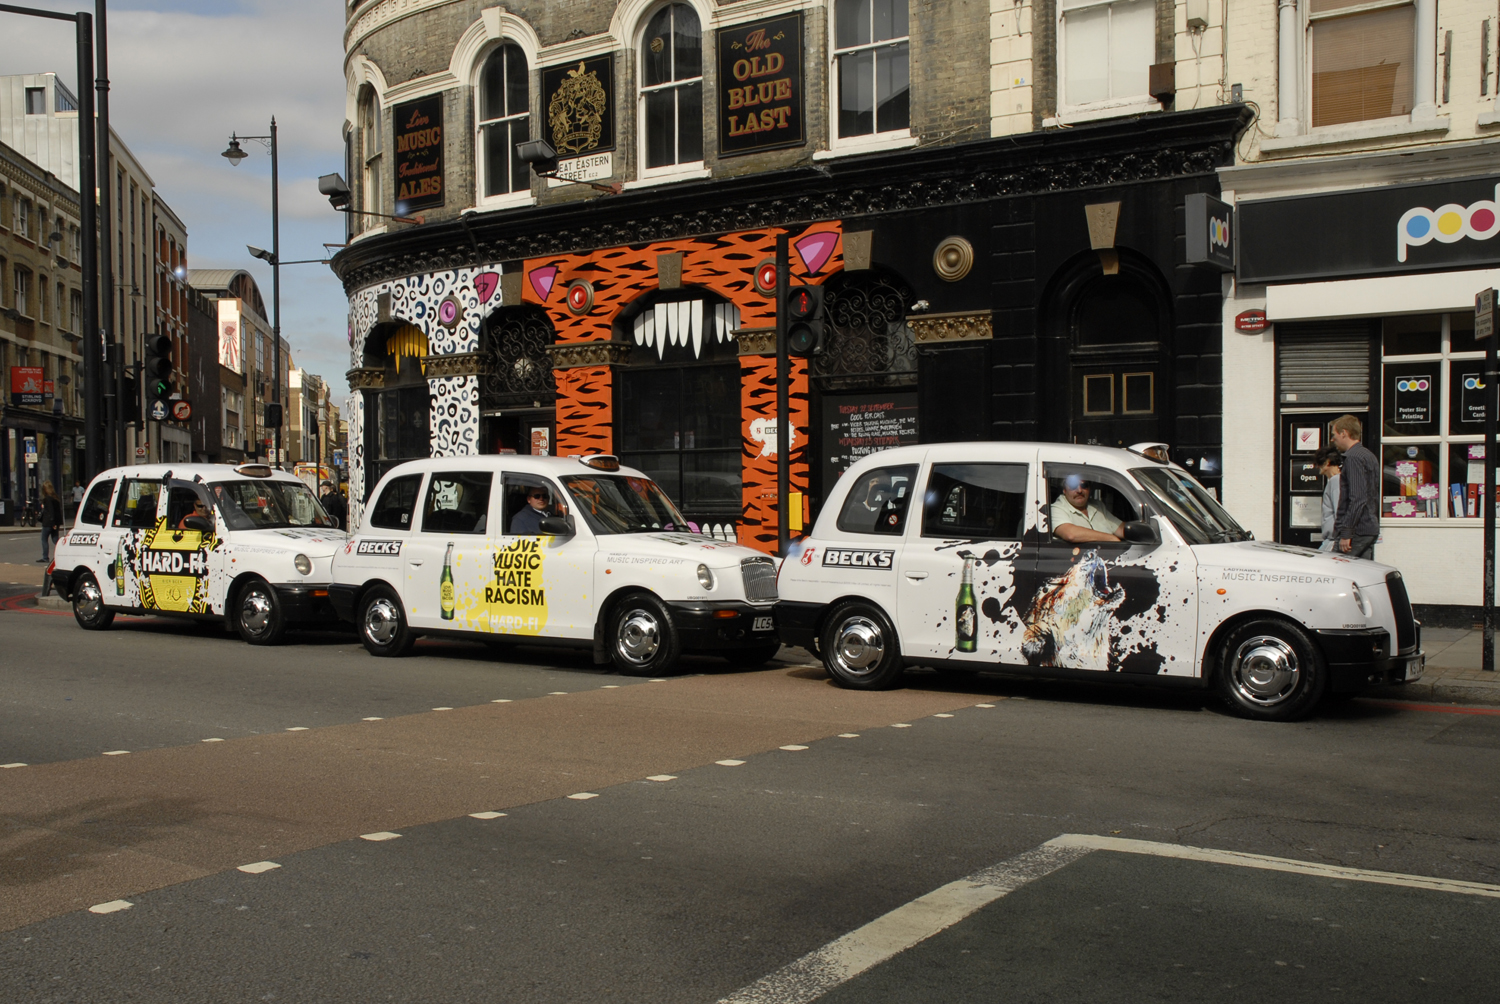 2009 Ubiquitous taxi advertising campaign for Becks - Music inspired art